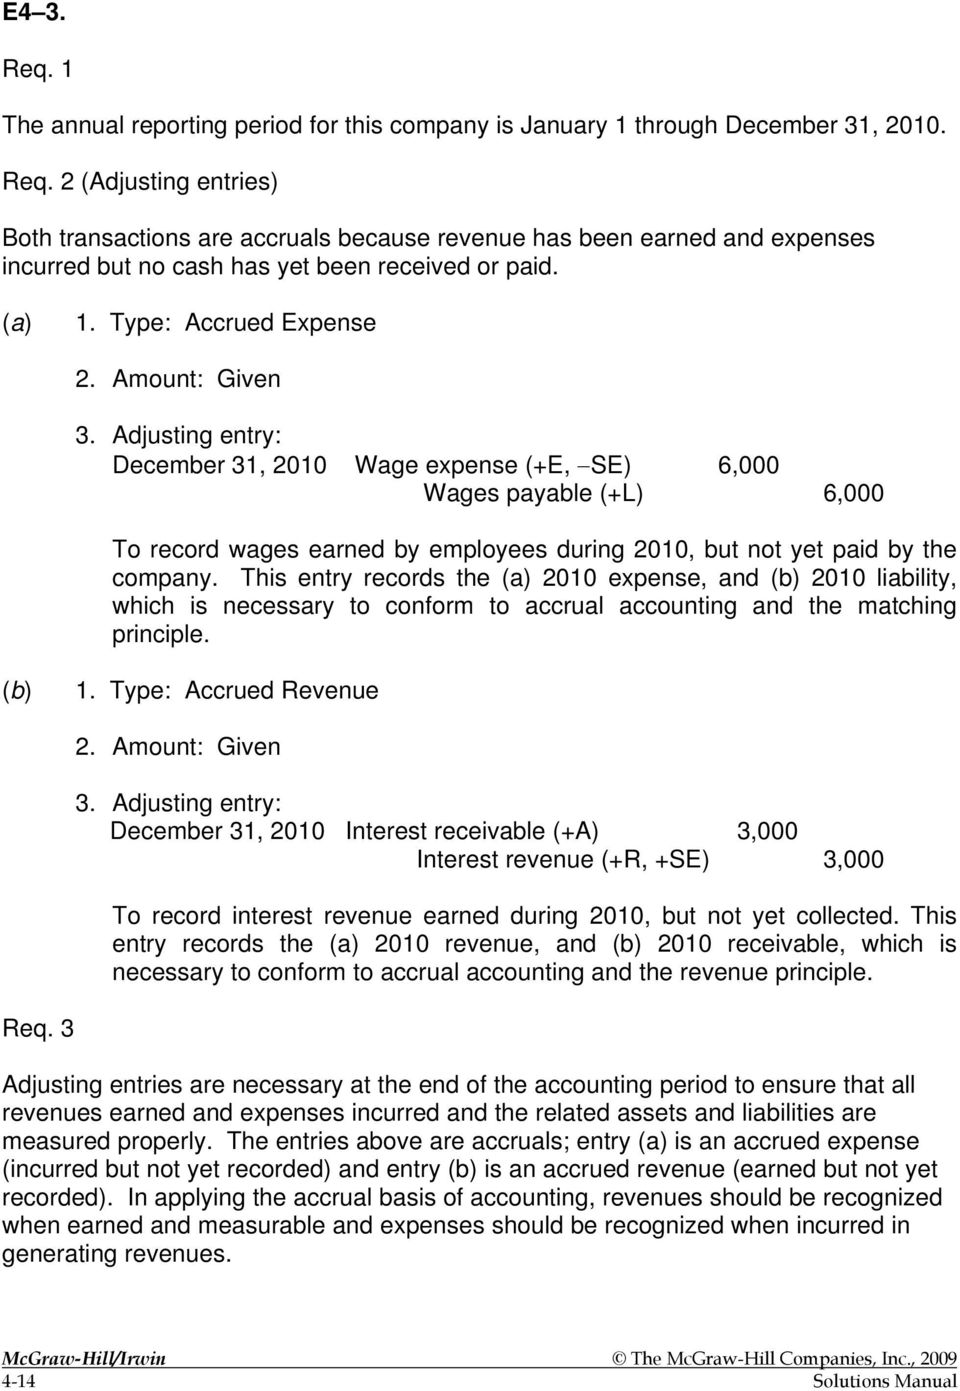 Adjusting entry: December 31, 2010 Wage expense (+E, SE) 6,000 Wages payable (+L) 6,000 To record wages earned by employees during 2010, but not yet paid by the company.